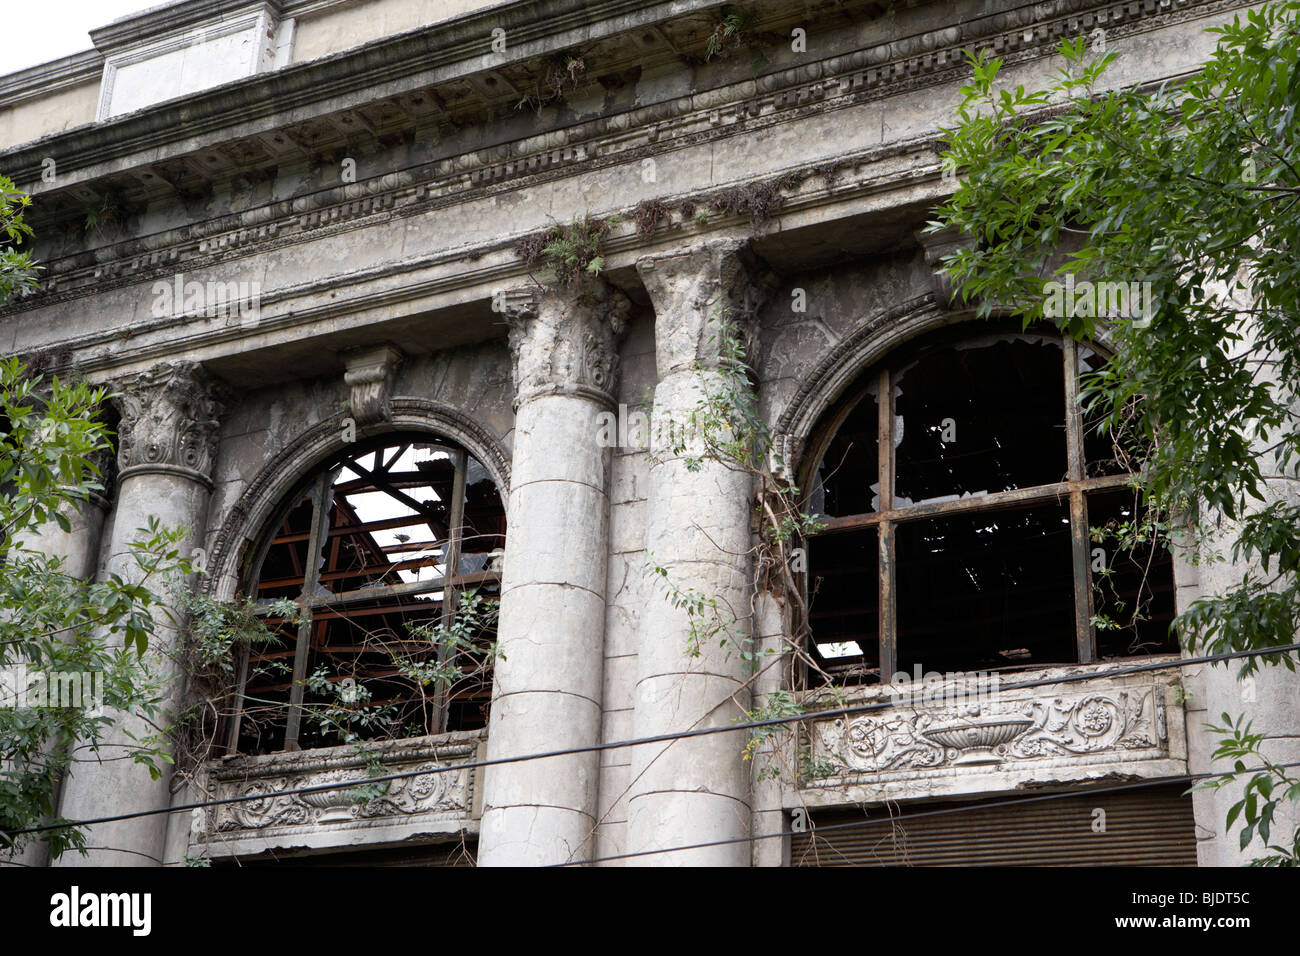 crumbling disused colonial building in la boca capital federal buenos aires republic of argentina south america - Stock Image